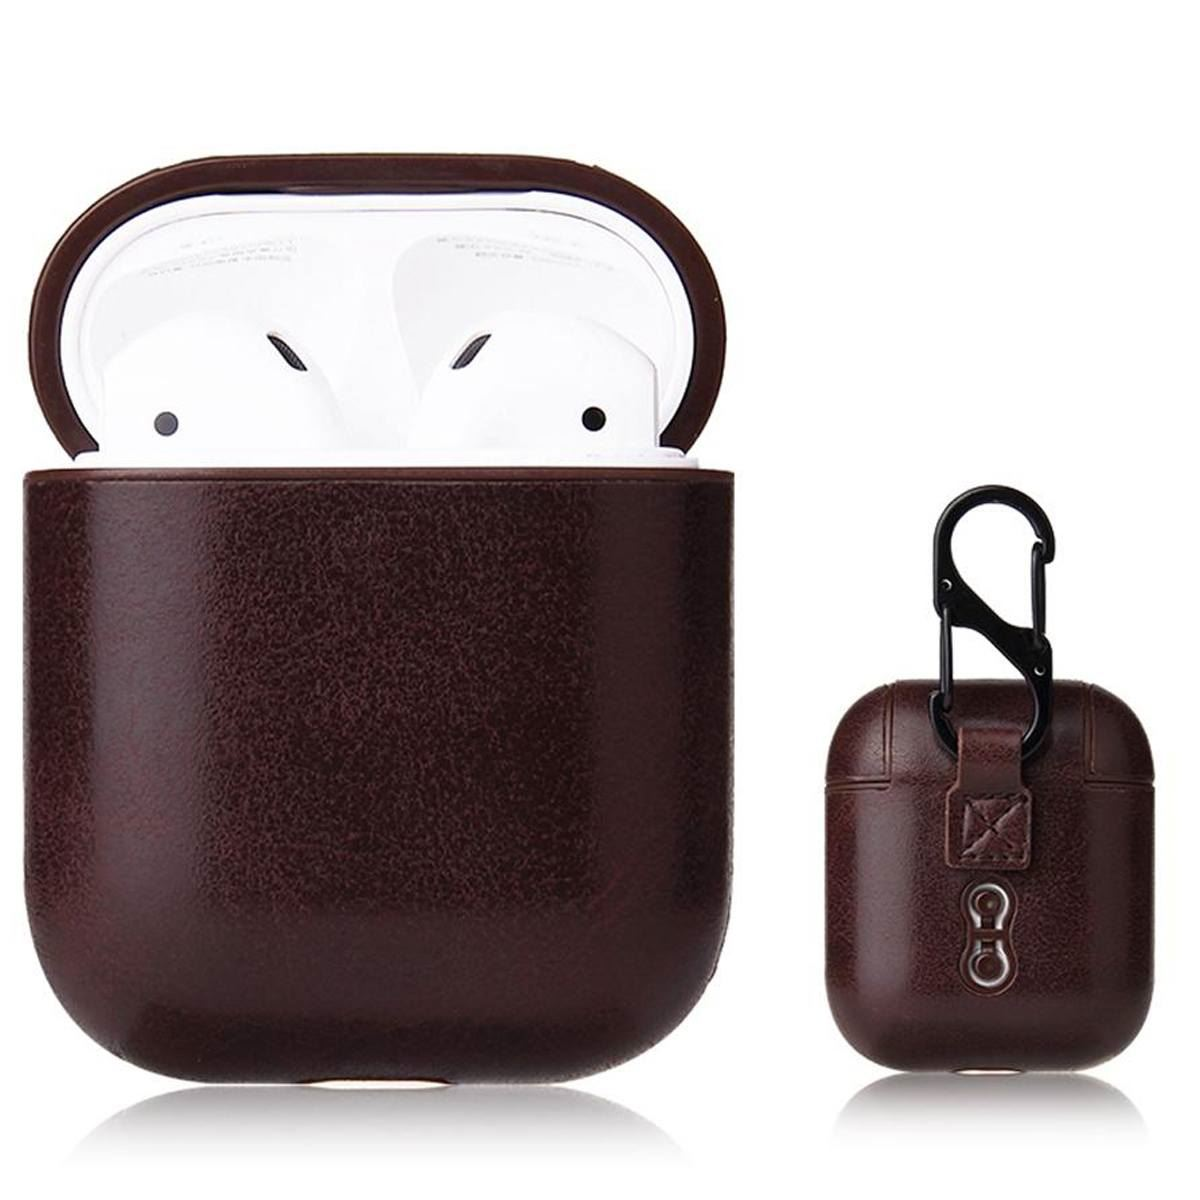 Case-For-Apple-Airpods-1-2-1st-2nd-Gen-Soft-Leather-Skin-Earphones-PU-Cover thumbnail 20